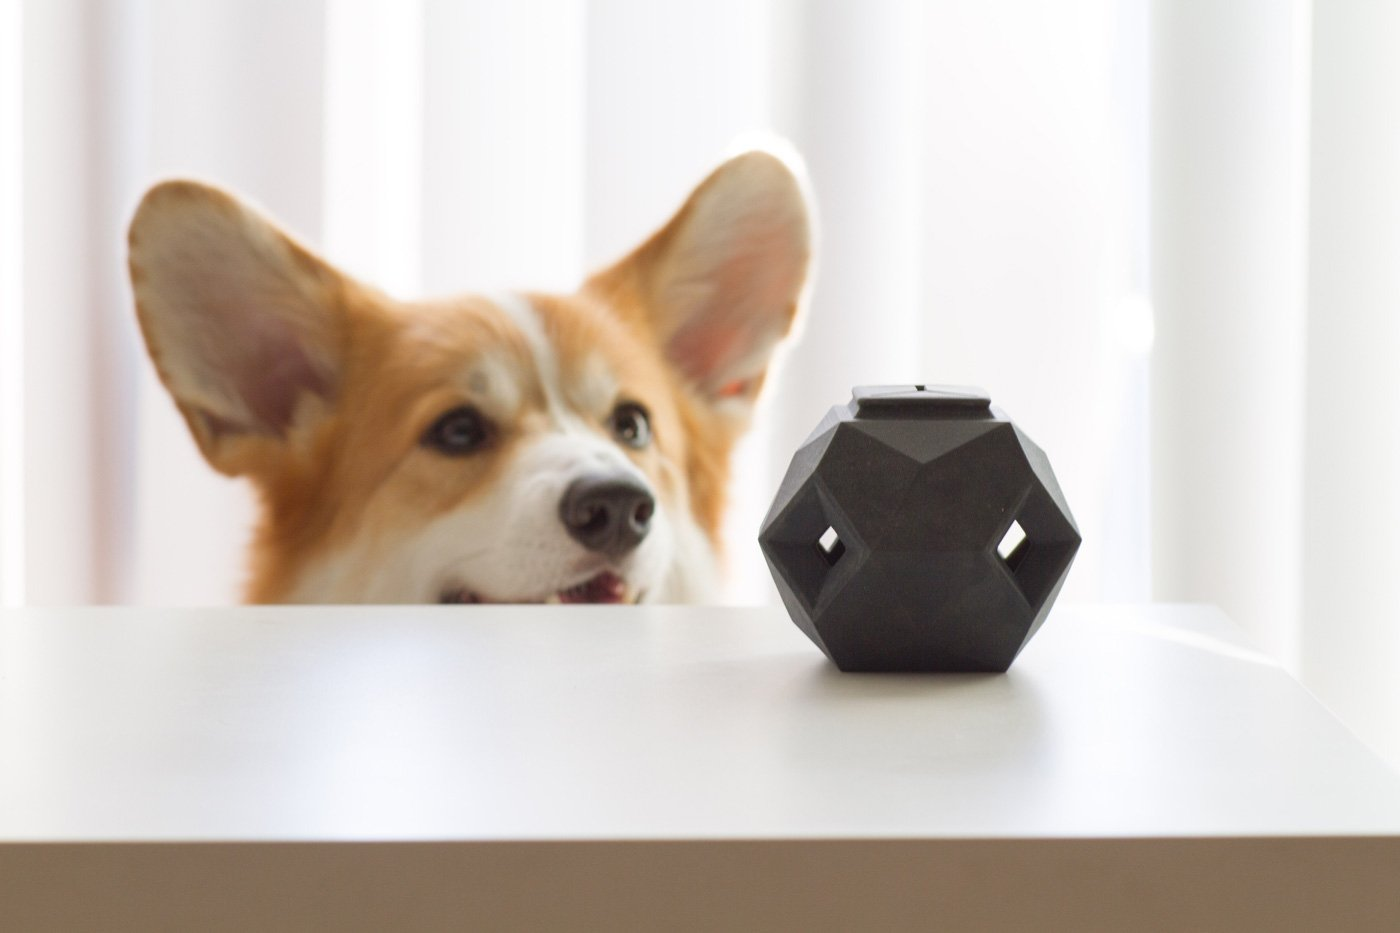 Puppy Toys For 10 And Up : Minimalist treat dispensing puzzle by up dog toys